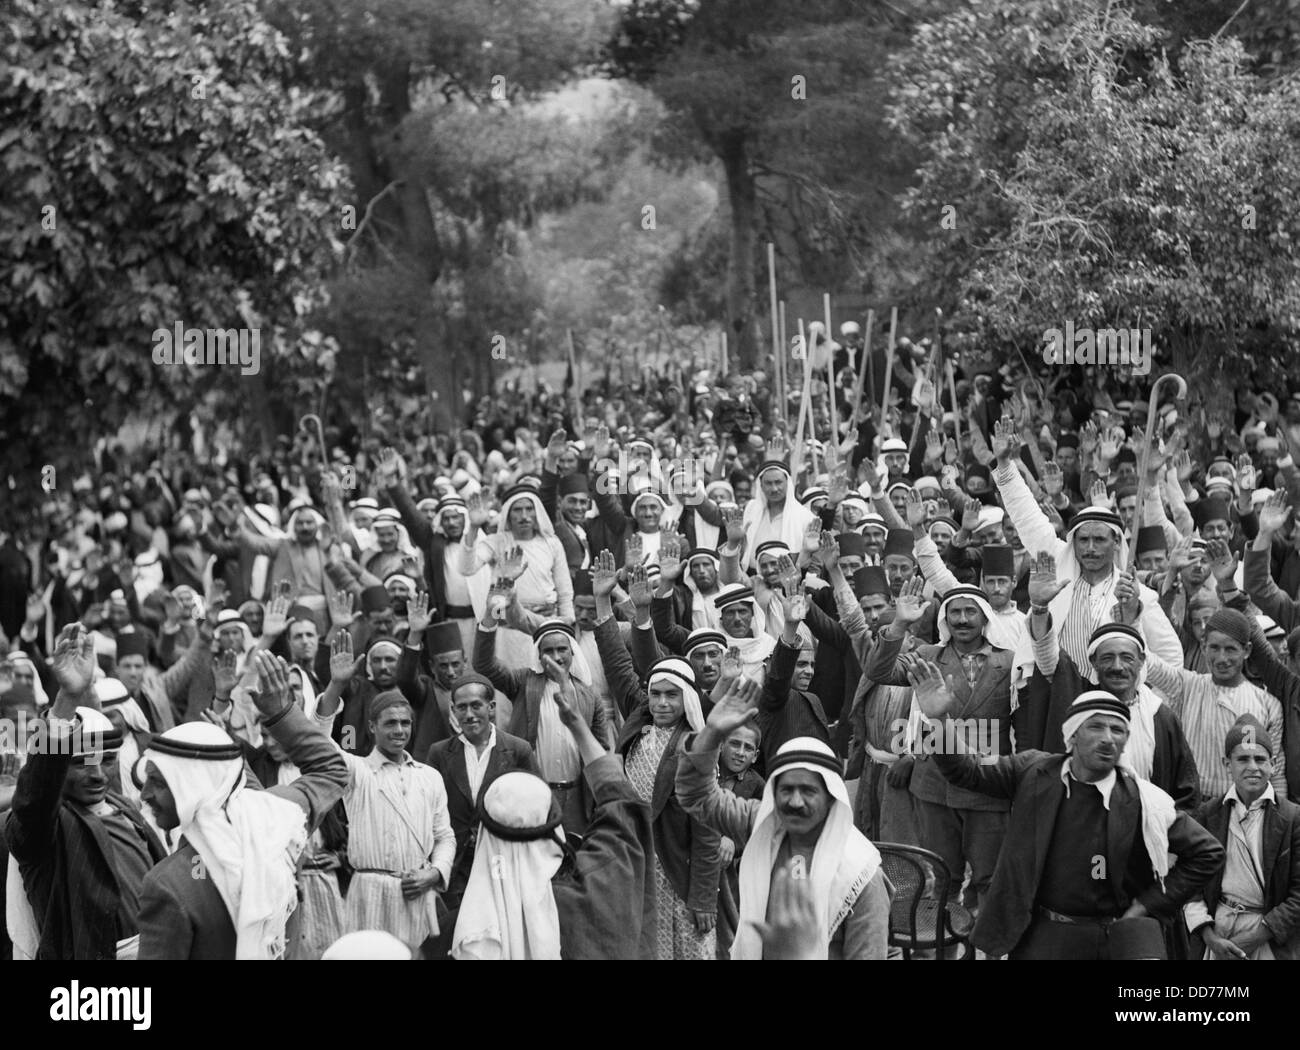 Palestine disturbances 1936. Palestine Arabs at Abou Ghosh taking the oath of allegiance to the Arab cause, and - Stock Image